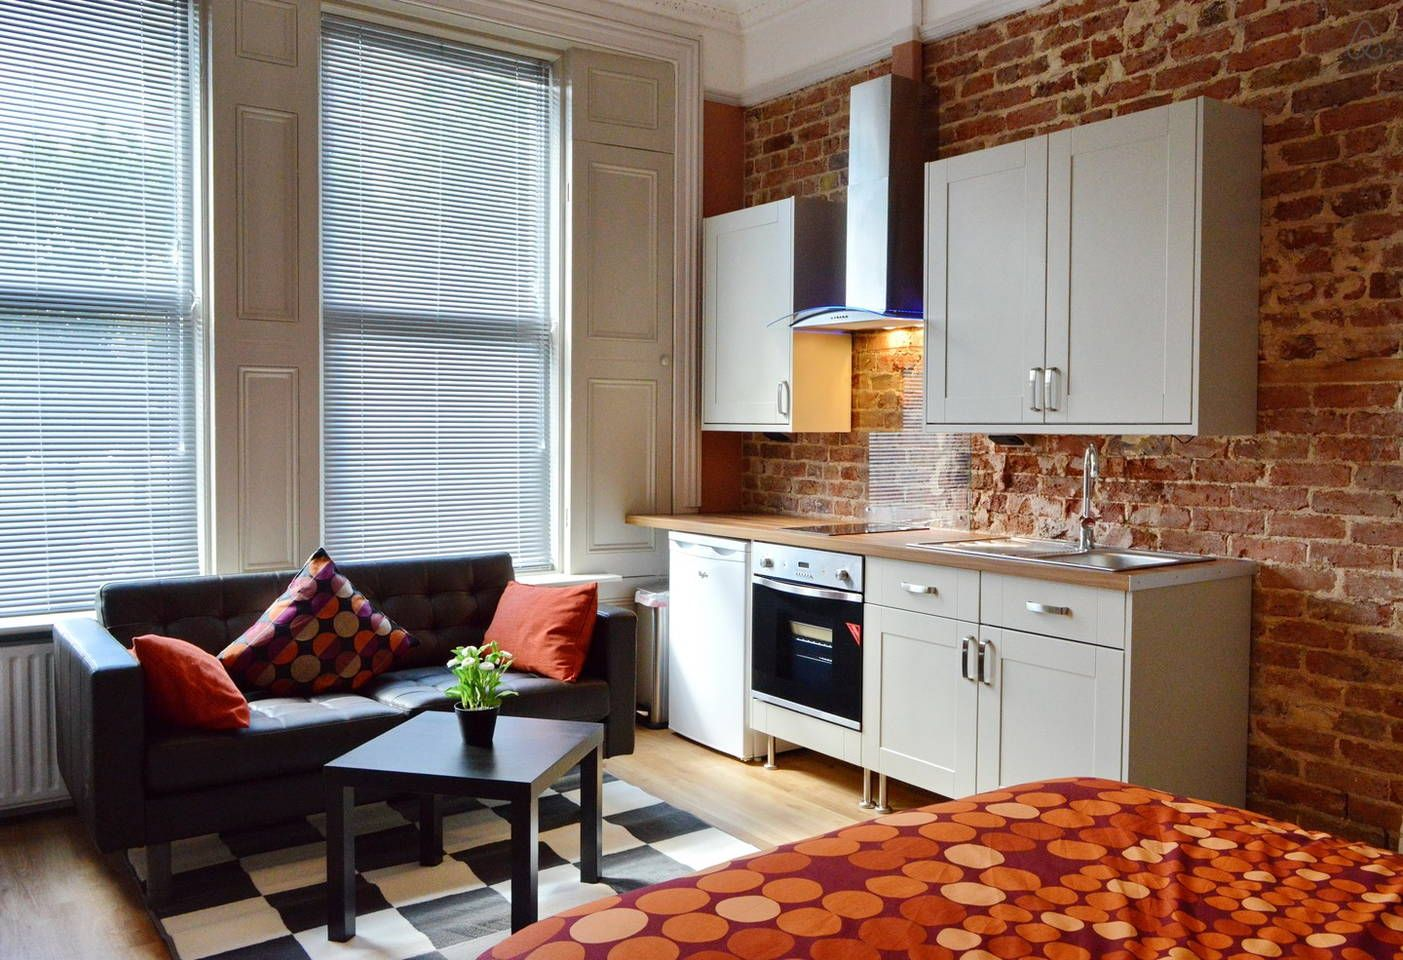 07 Unbeatable value in South London | London apartments ...